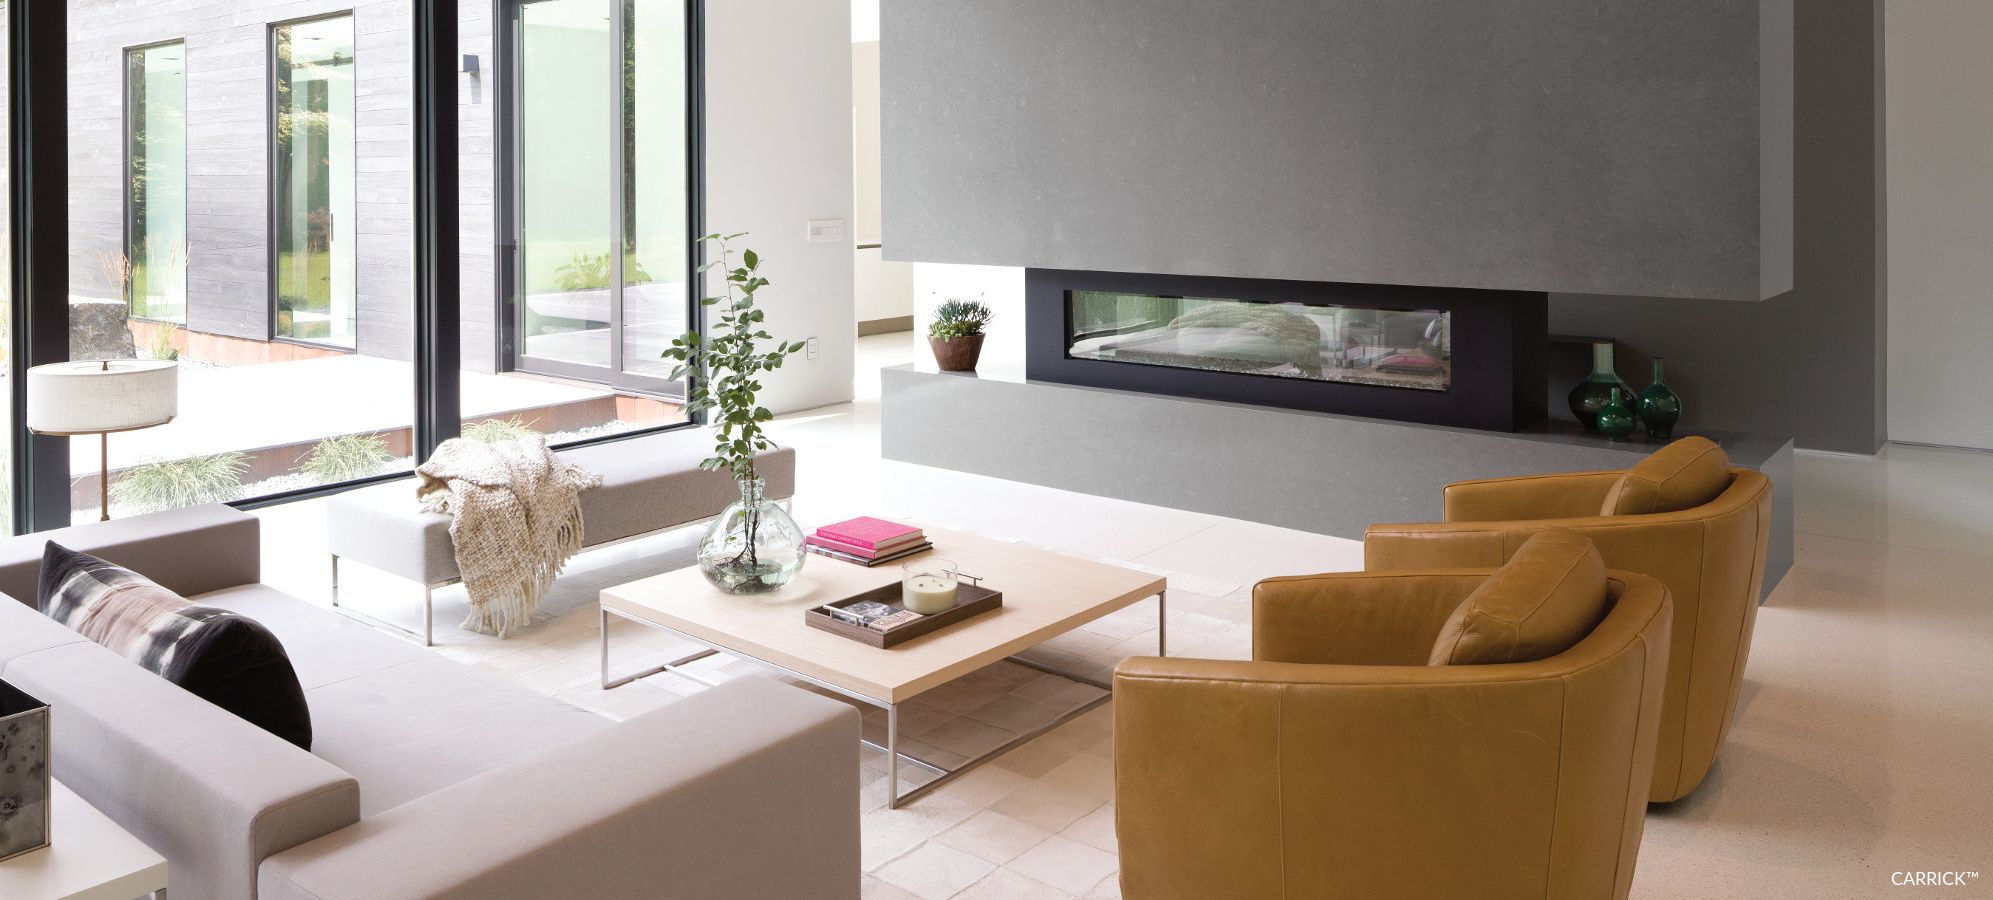 Cambria-Carrick-fireplace